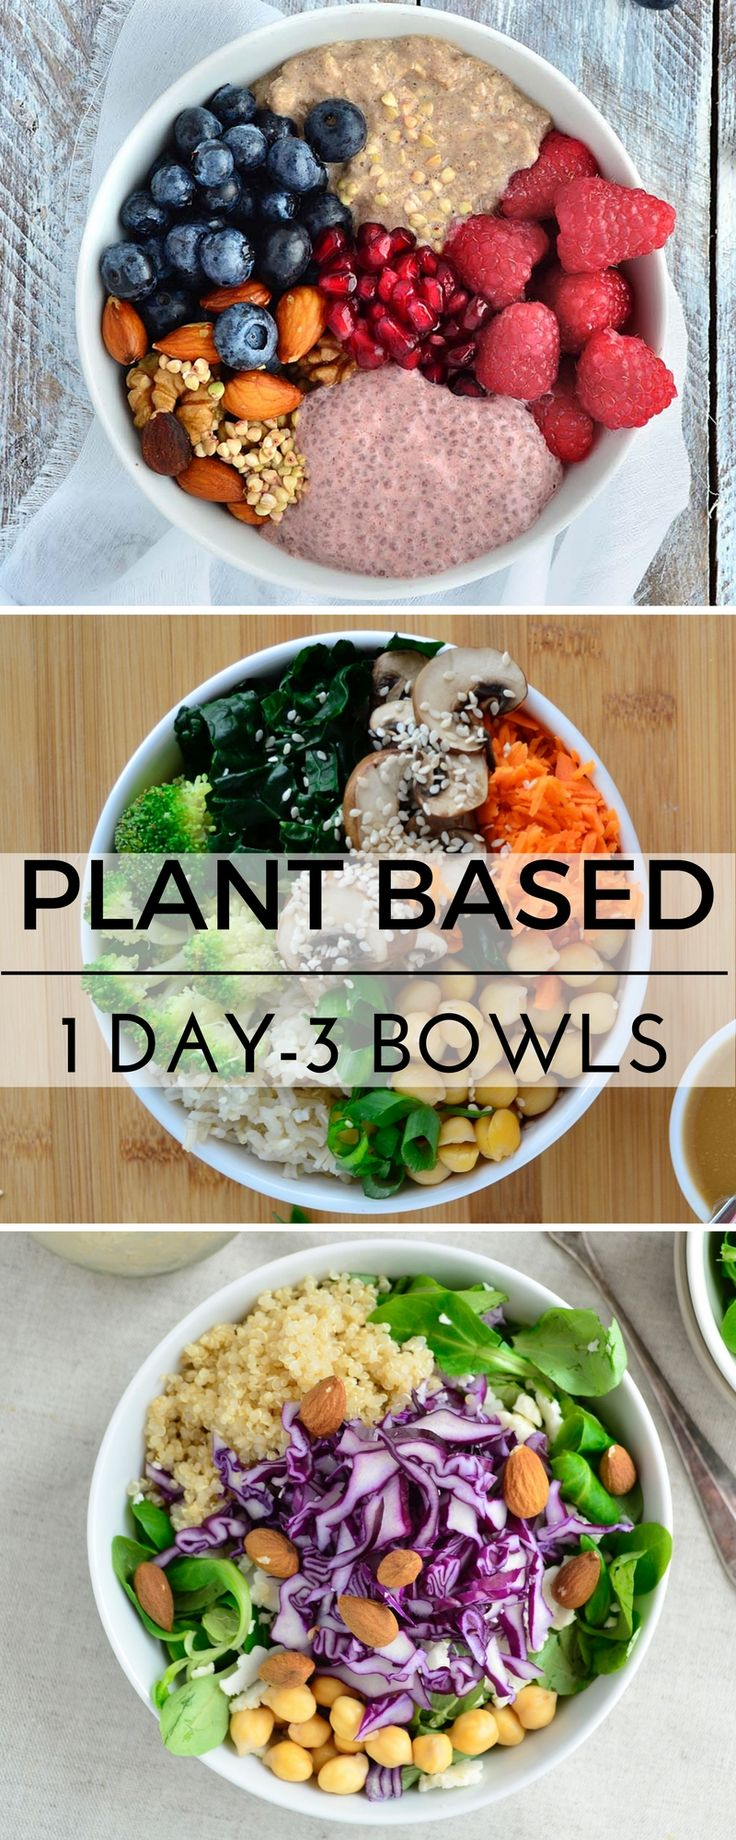 Best 25 raw food recipes ideas on pinterest raw food diet raw plant based recipes vegan recipes healthy gluten free vegan meal ideas forumfinder Image collections